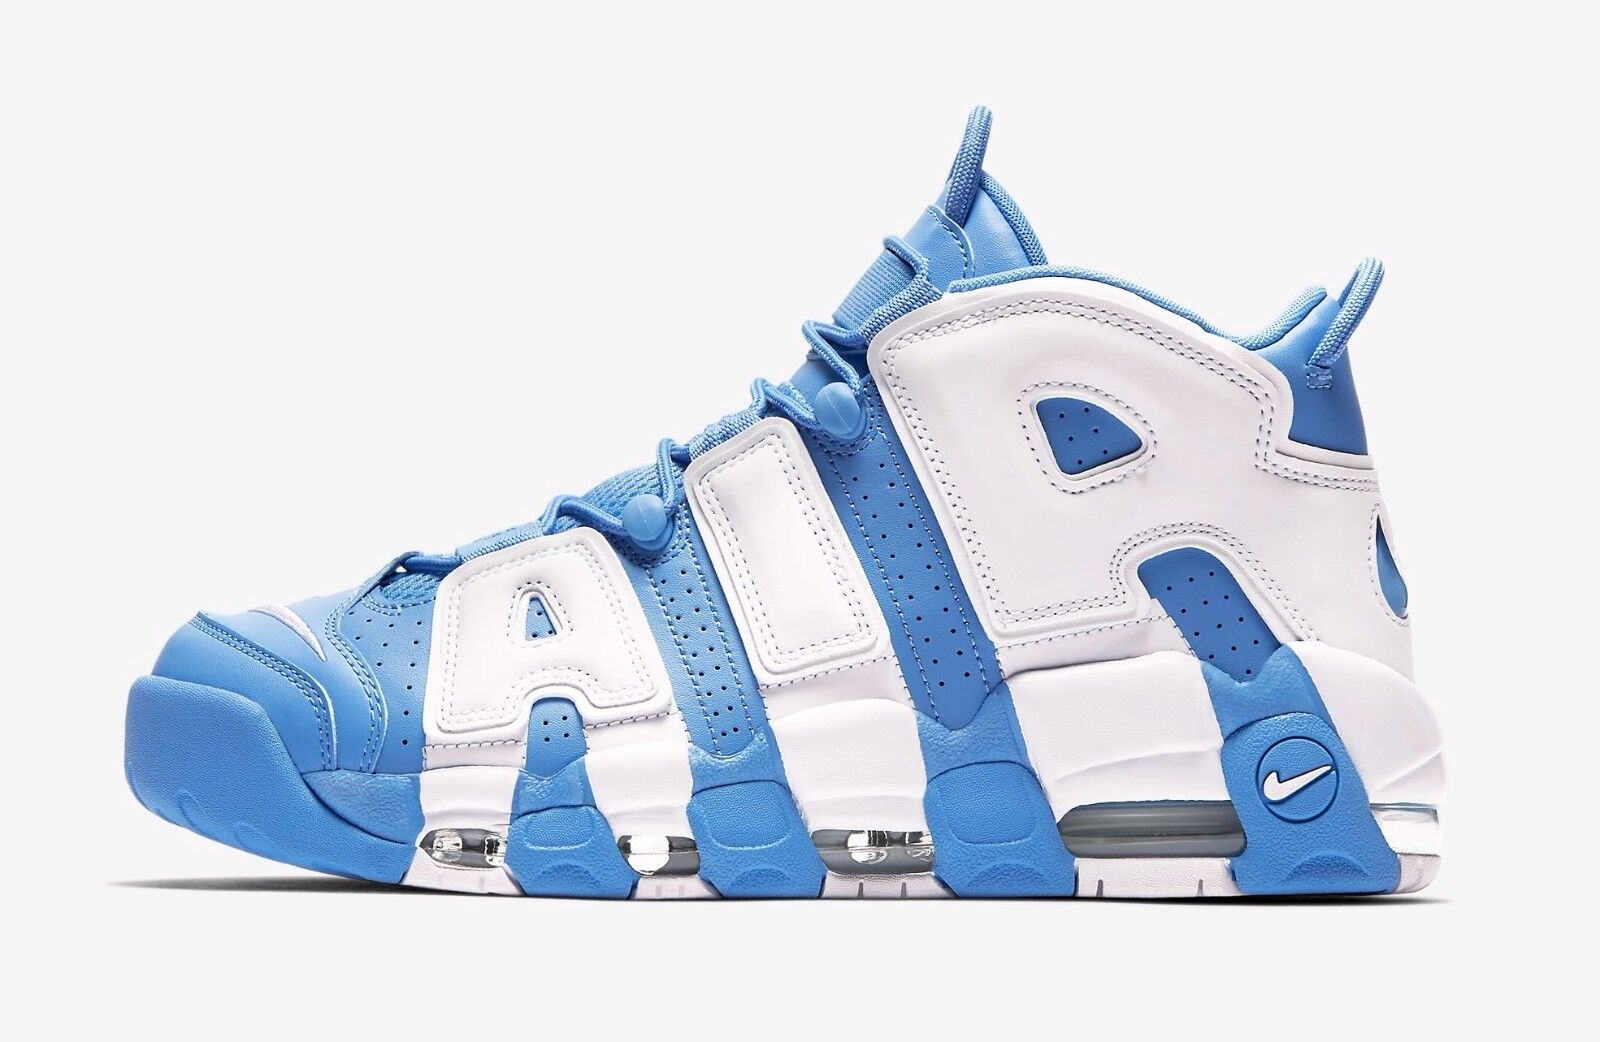 2017 Nike Air More Uptempo size 7.5. UNC White University Blue. 921948-401.